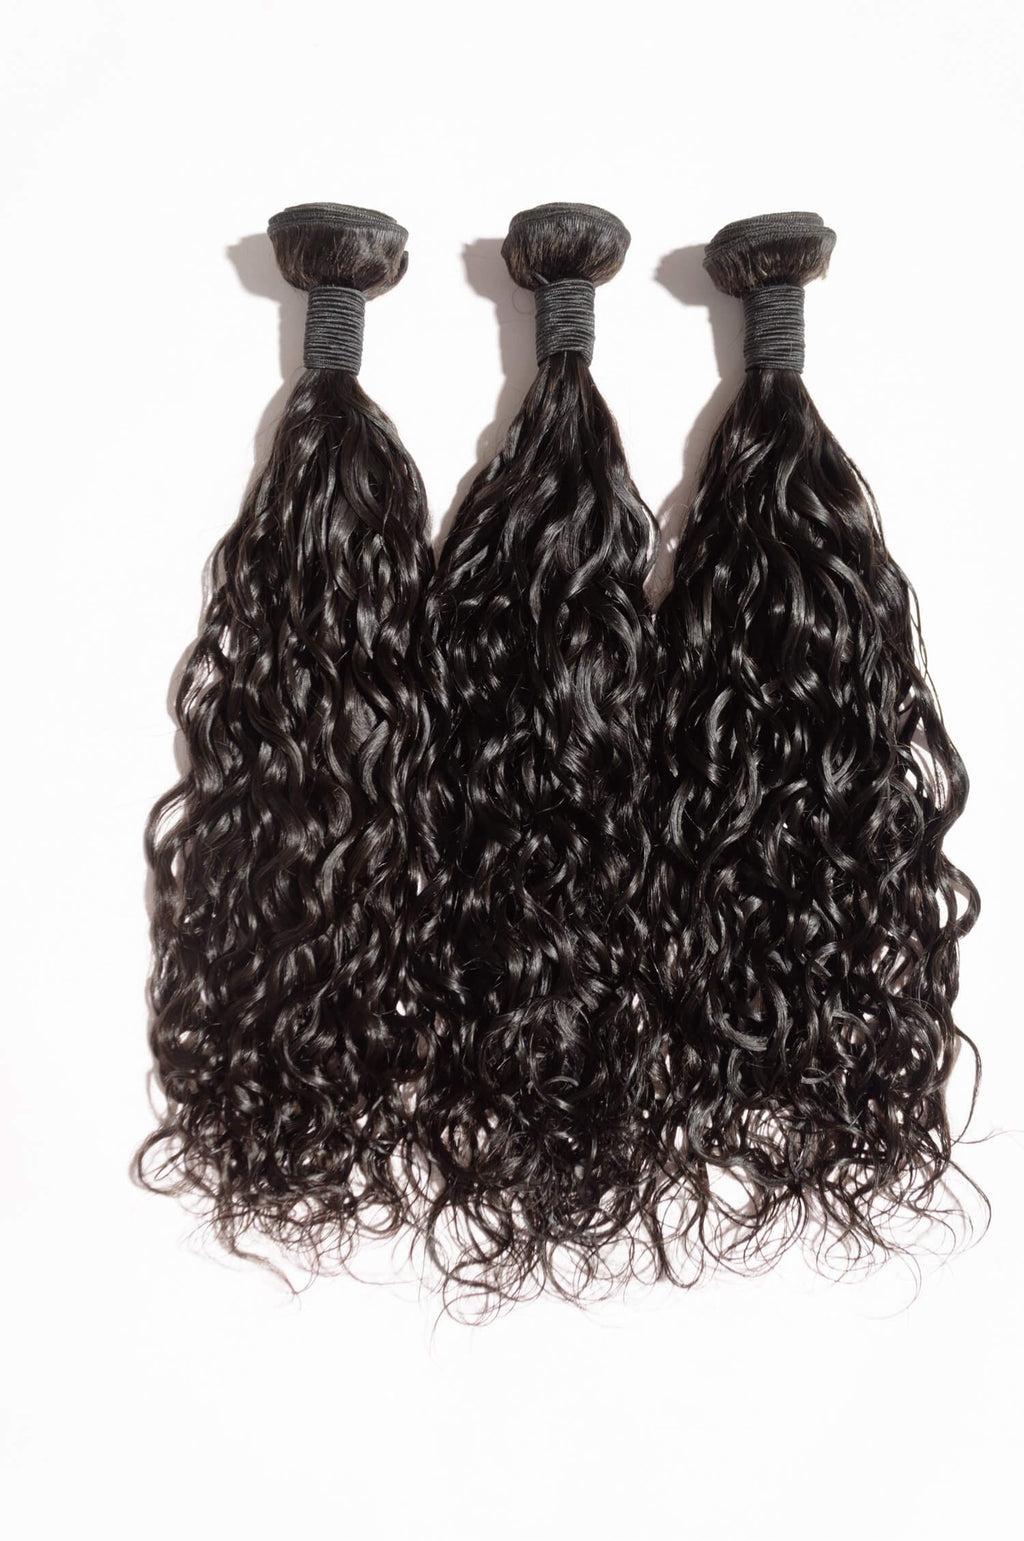 Brazilian Natural Wave Remy Hair Extensions-Natural Wave Hair Extensions-House of Zettie Hair